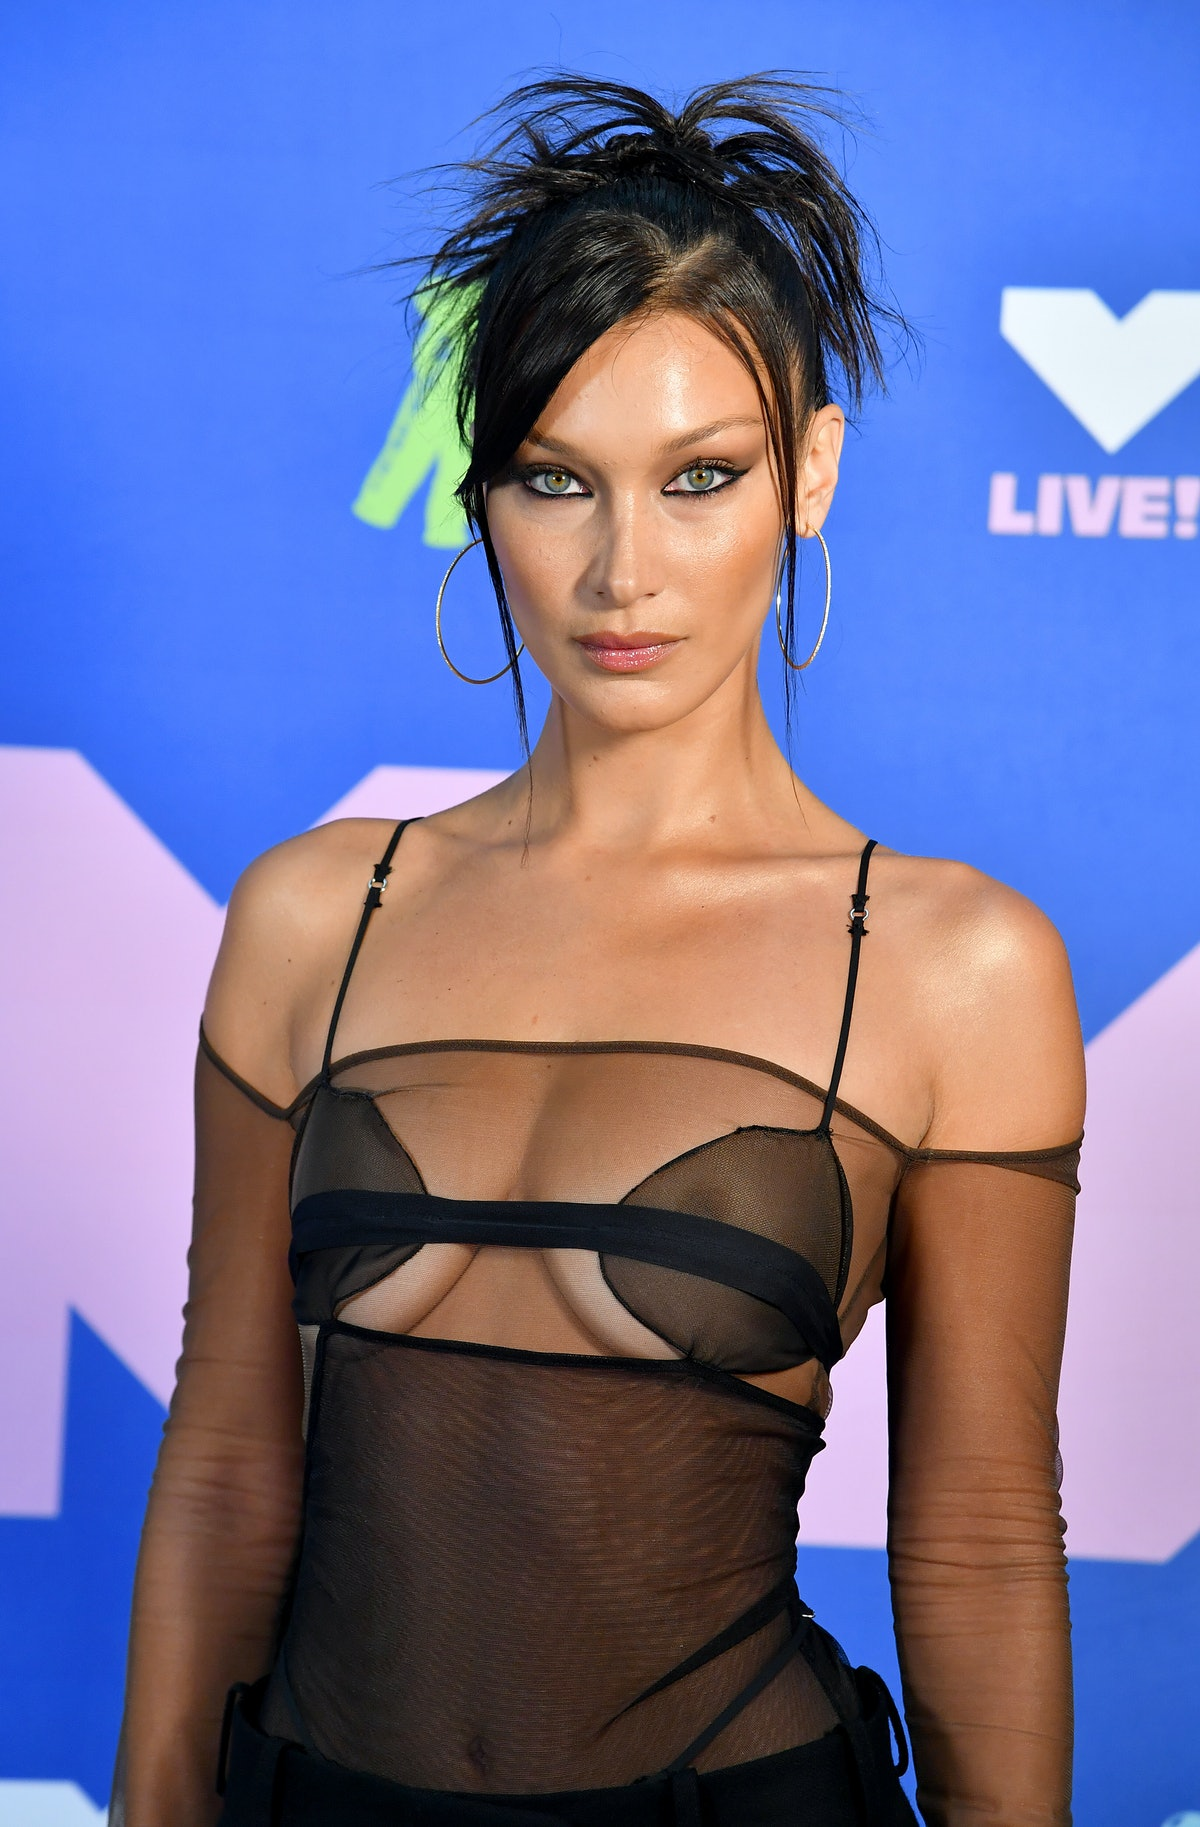 Bella Hadid's spiky 'do at the VMAs was totally '90s.